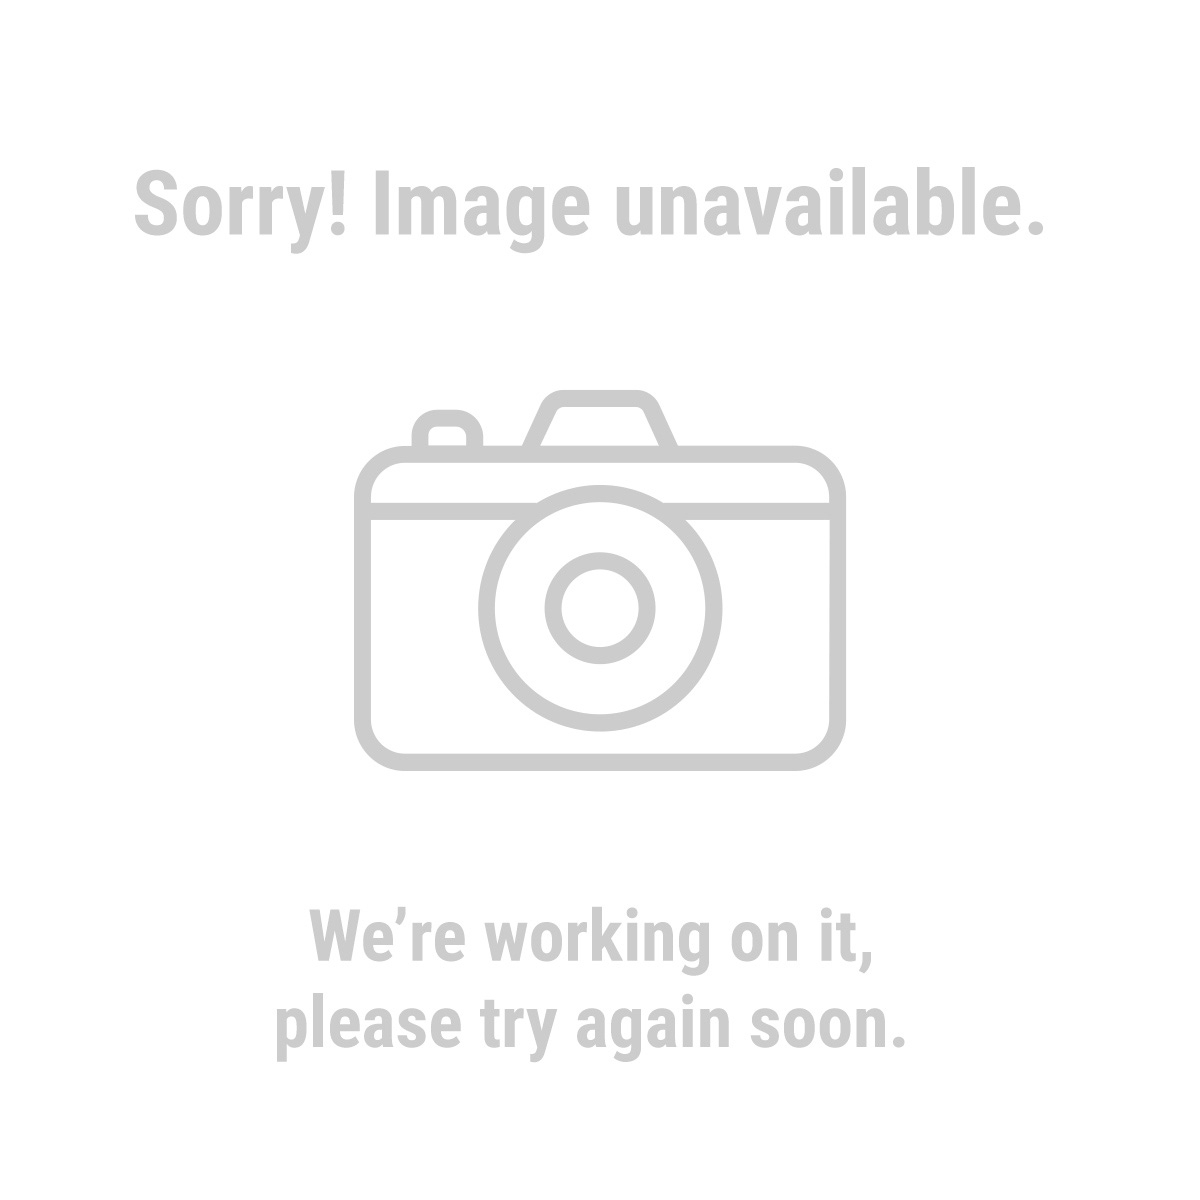 Pittsburgh Automotive 60536 1500 Lb. Capacity ATV/Motorcycle Lift